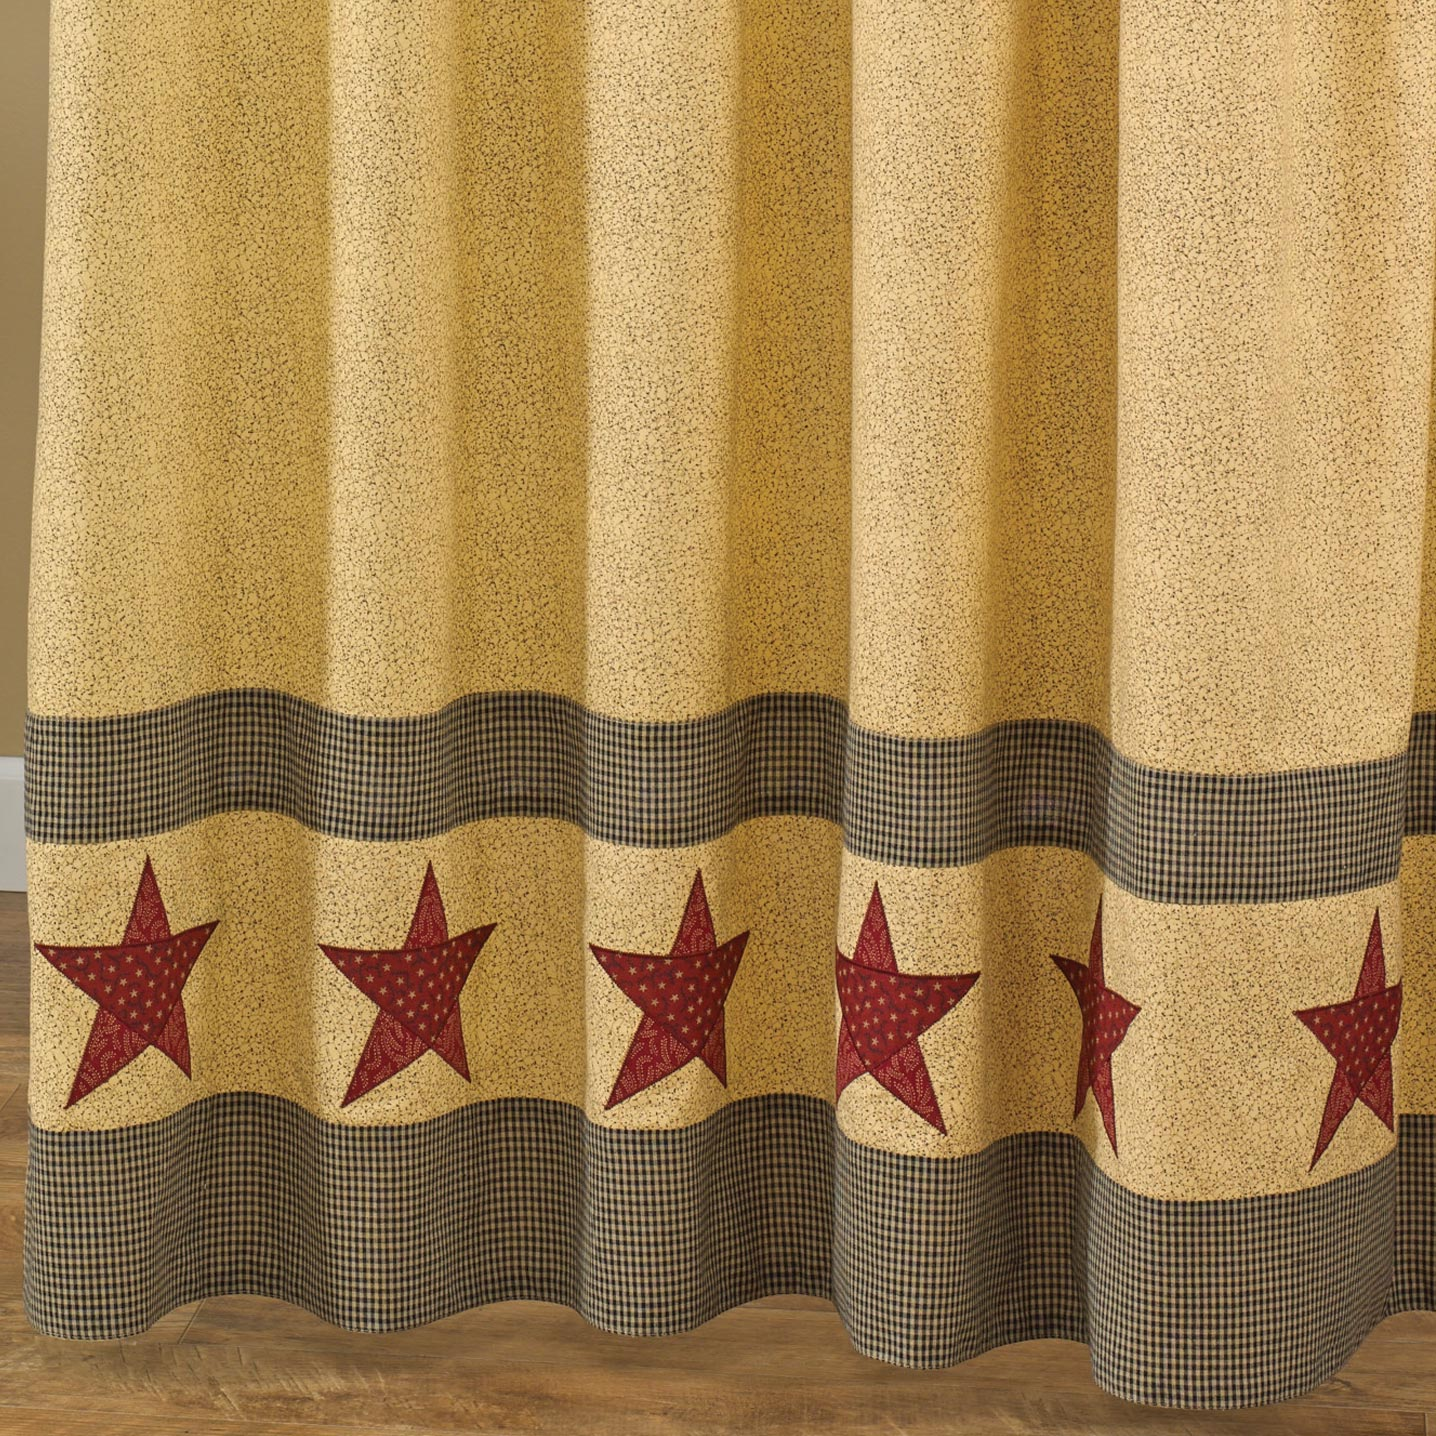 details about country star shower curtain tan black red 72x72 cotton